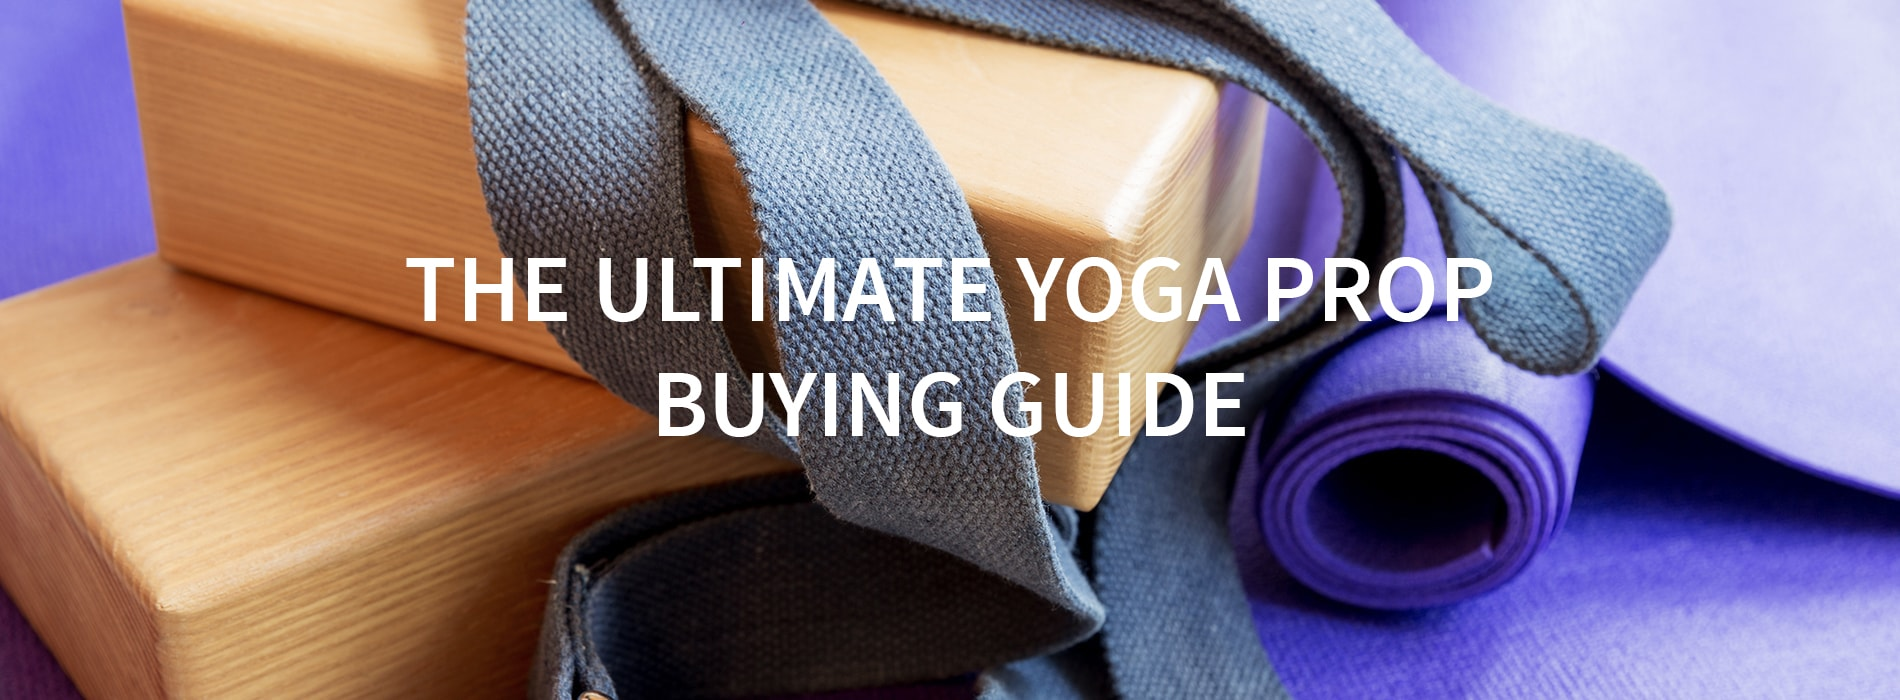 The Ultimate Yoga Props Buying Guide